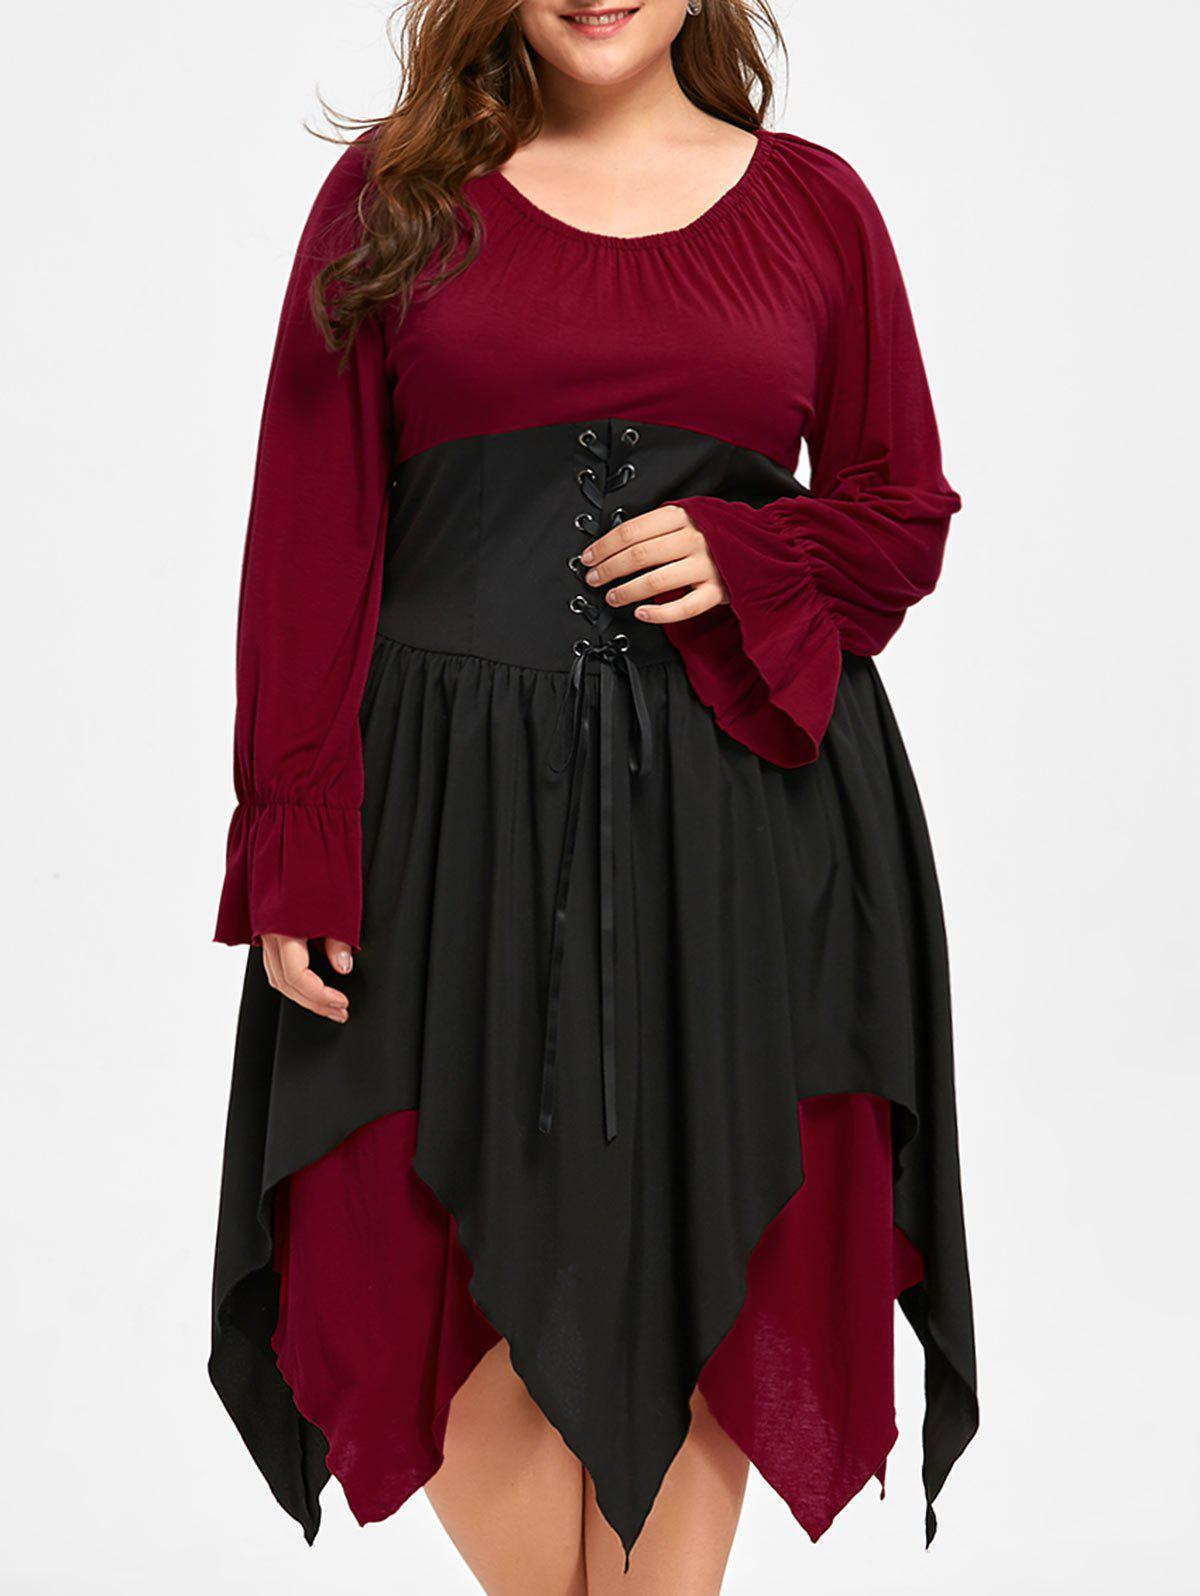 Plus Size Halloween Lace Up Handkerchief DressWOMEN<br><br>Size: 5XL; Color: DEEP RED; Style: Novelty; Material: Polyester,Spandex; Silhouette: A-Line; Dresses Length: Mid-Calf; Neckline: Scoop Neck; Sleeve Length: Long Sleeves; Pattern Type: Solid; With Belt: No; Season: Fall,Spring; Weight: 0.5900kg; Package Contents: 1 x Dress;